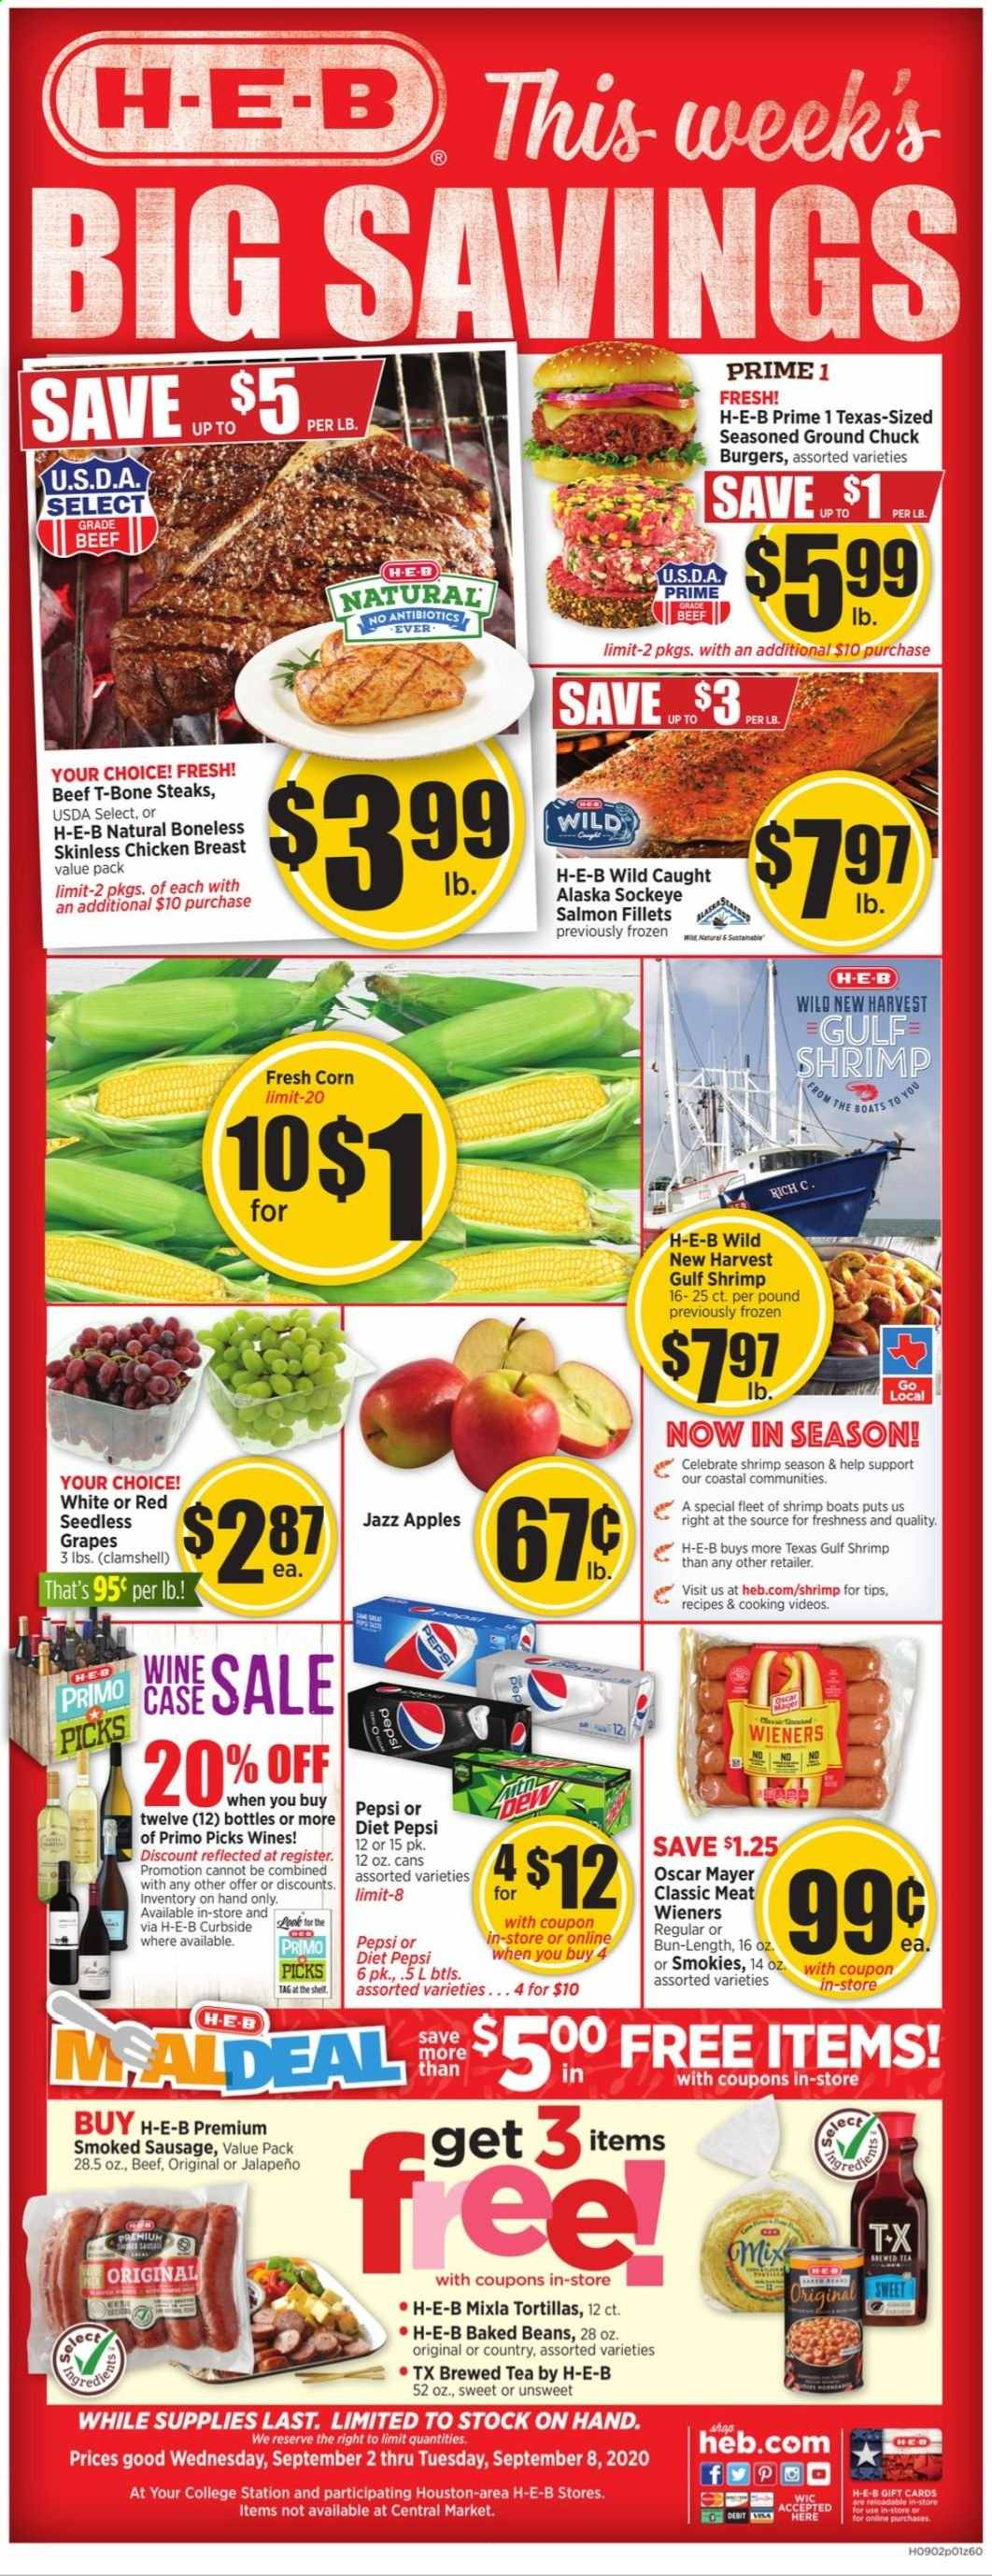 H-E-B Flyer - 09.02.2020 - 09.08.2020 - Sales products - corn, apples, grapes, seedless grapes, tortillas, salmon, shrimps, sausage, smoked sausage, beans, oats, jalapeño, Pepsi, diet pepsi, tea, wine, chicken, chicken breast, beef meat, t-bone steak, ground chuck, Frozen. Page 1.